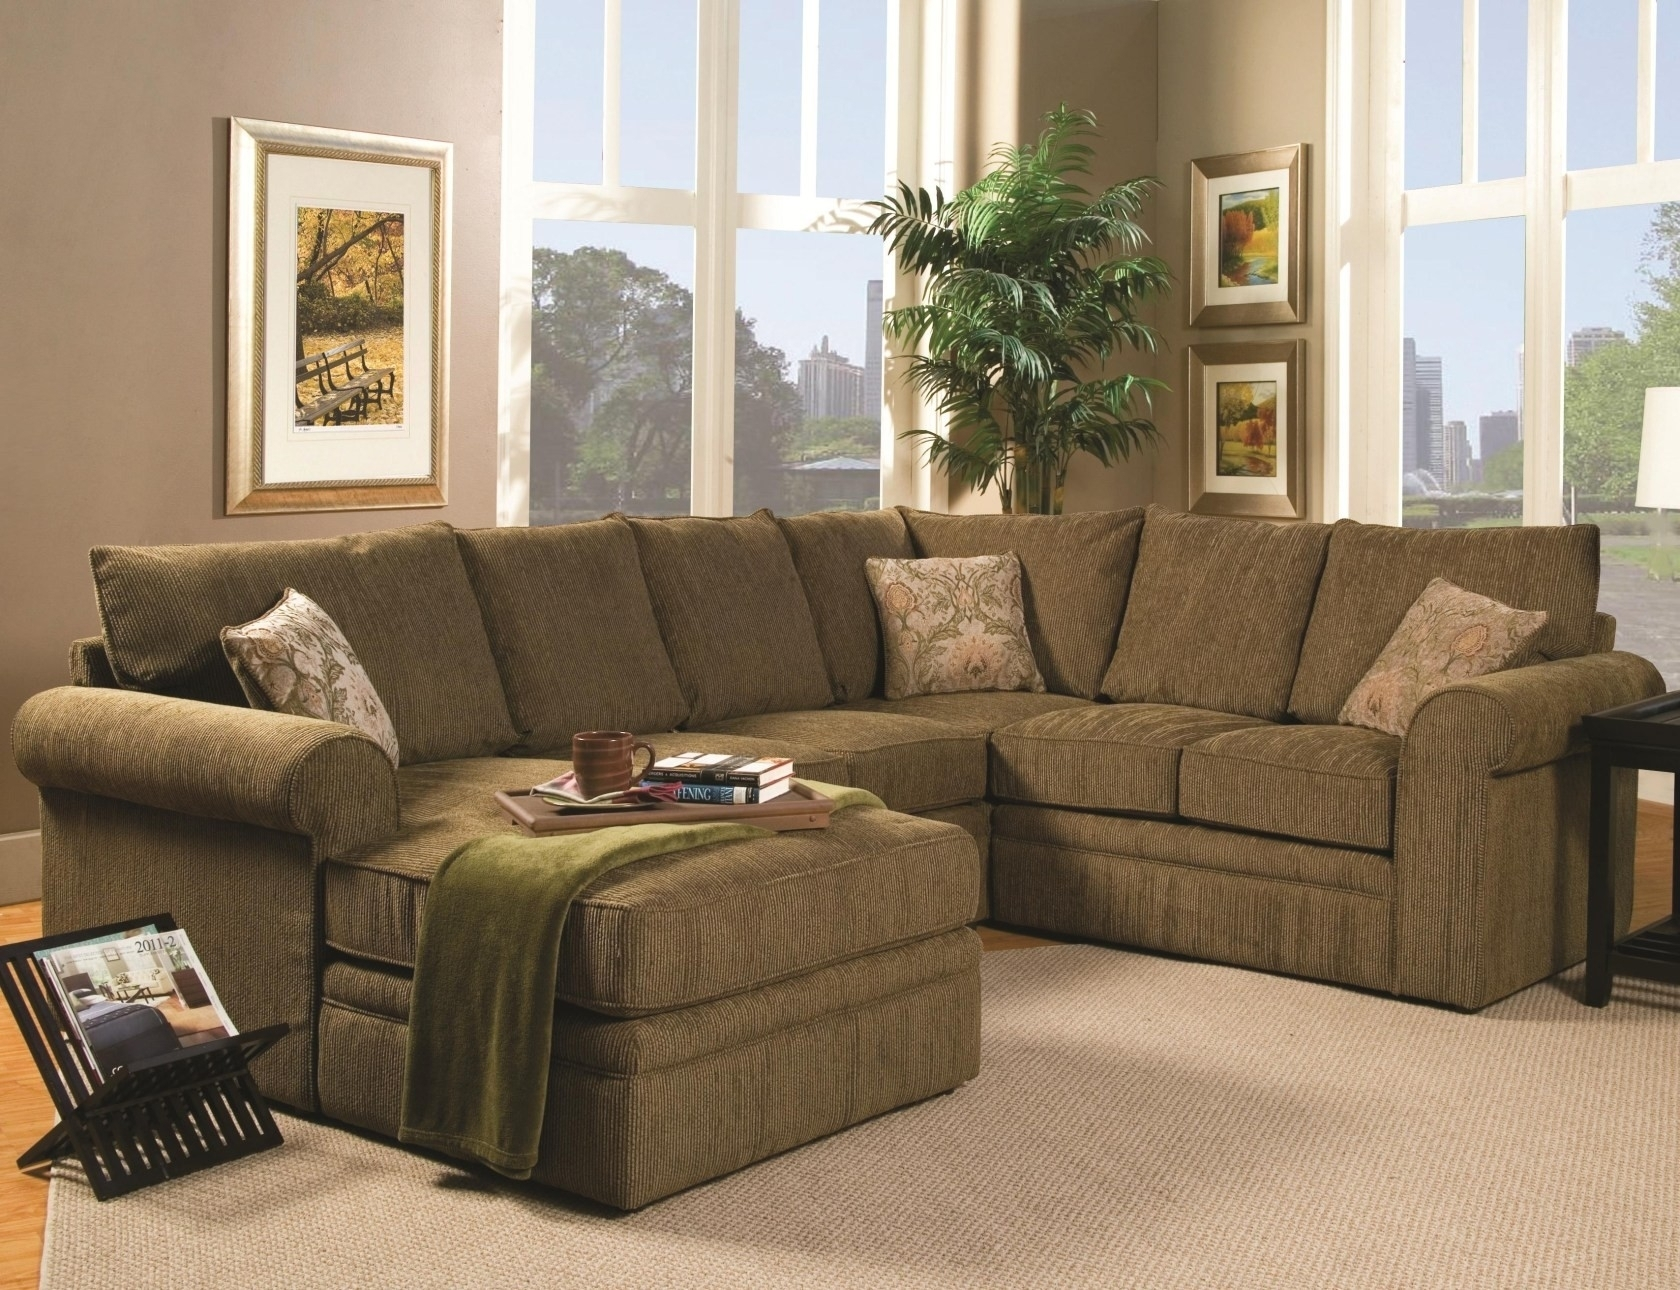 Cool Small U Shaped Sectional Sofa 28 For Bauhaus Sectional Sofa Inside Small U Shaped Sectional Sofas (View 3 of 15)